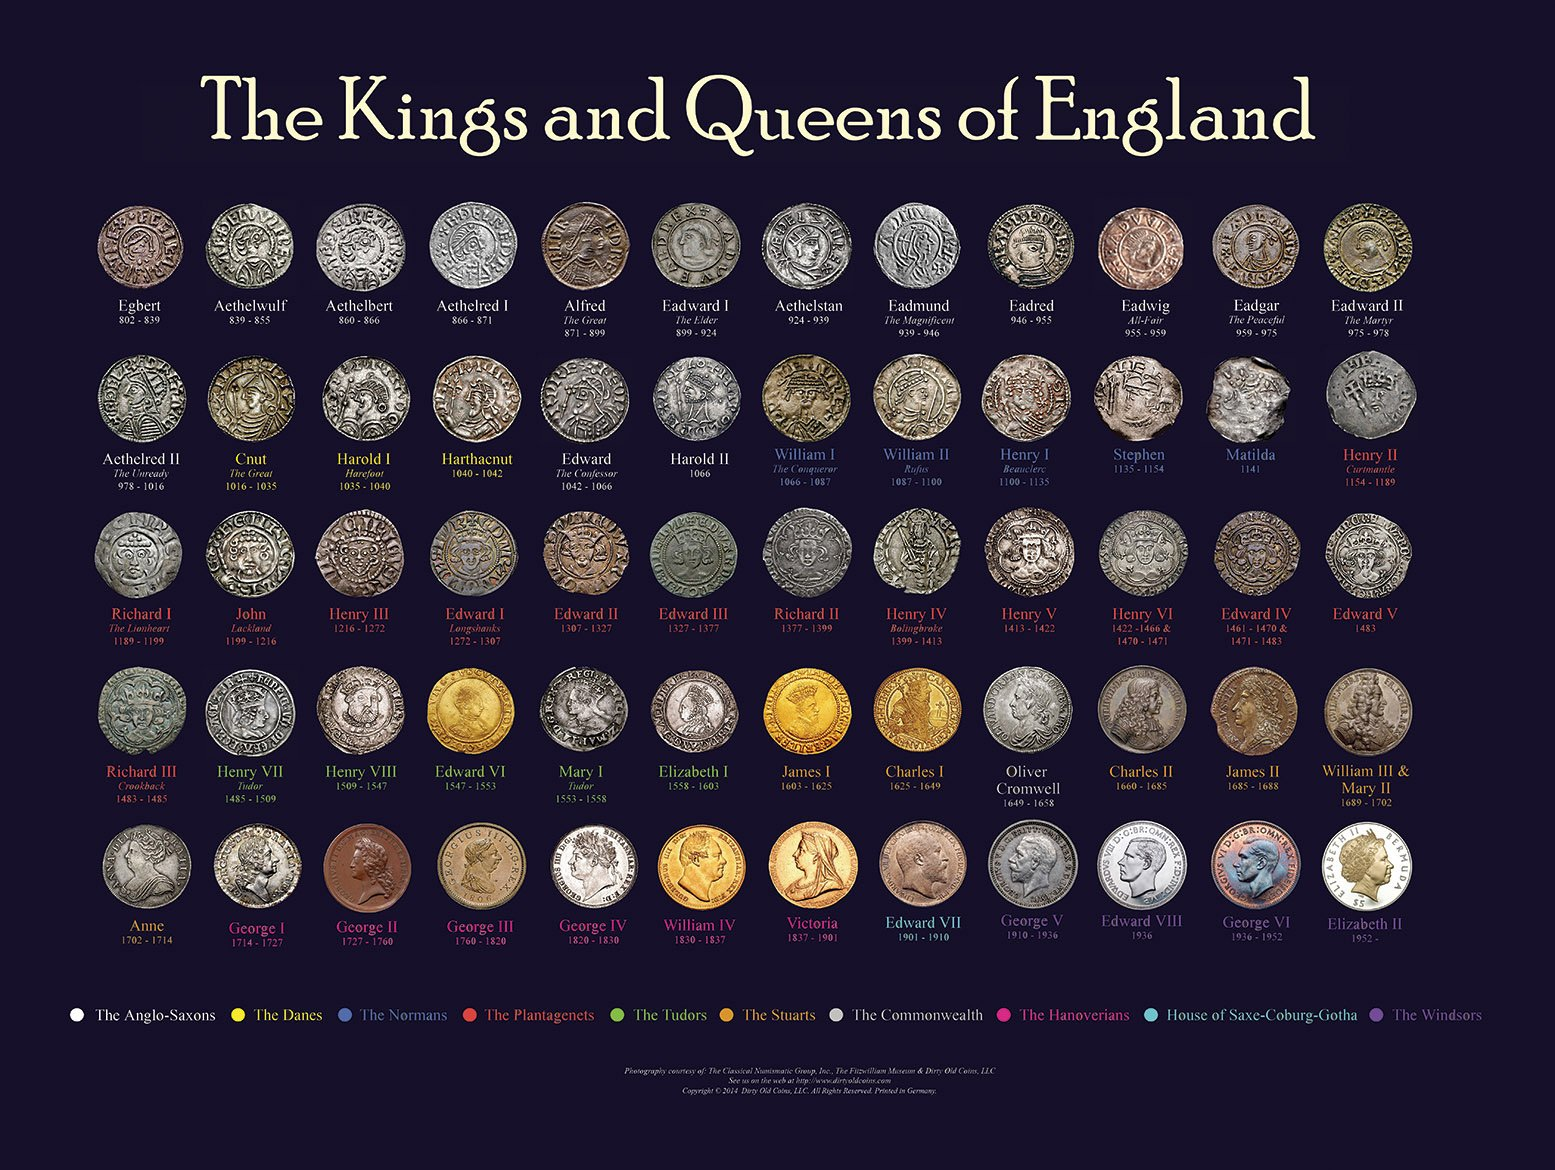 Kings & queens of england timeline